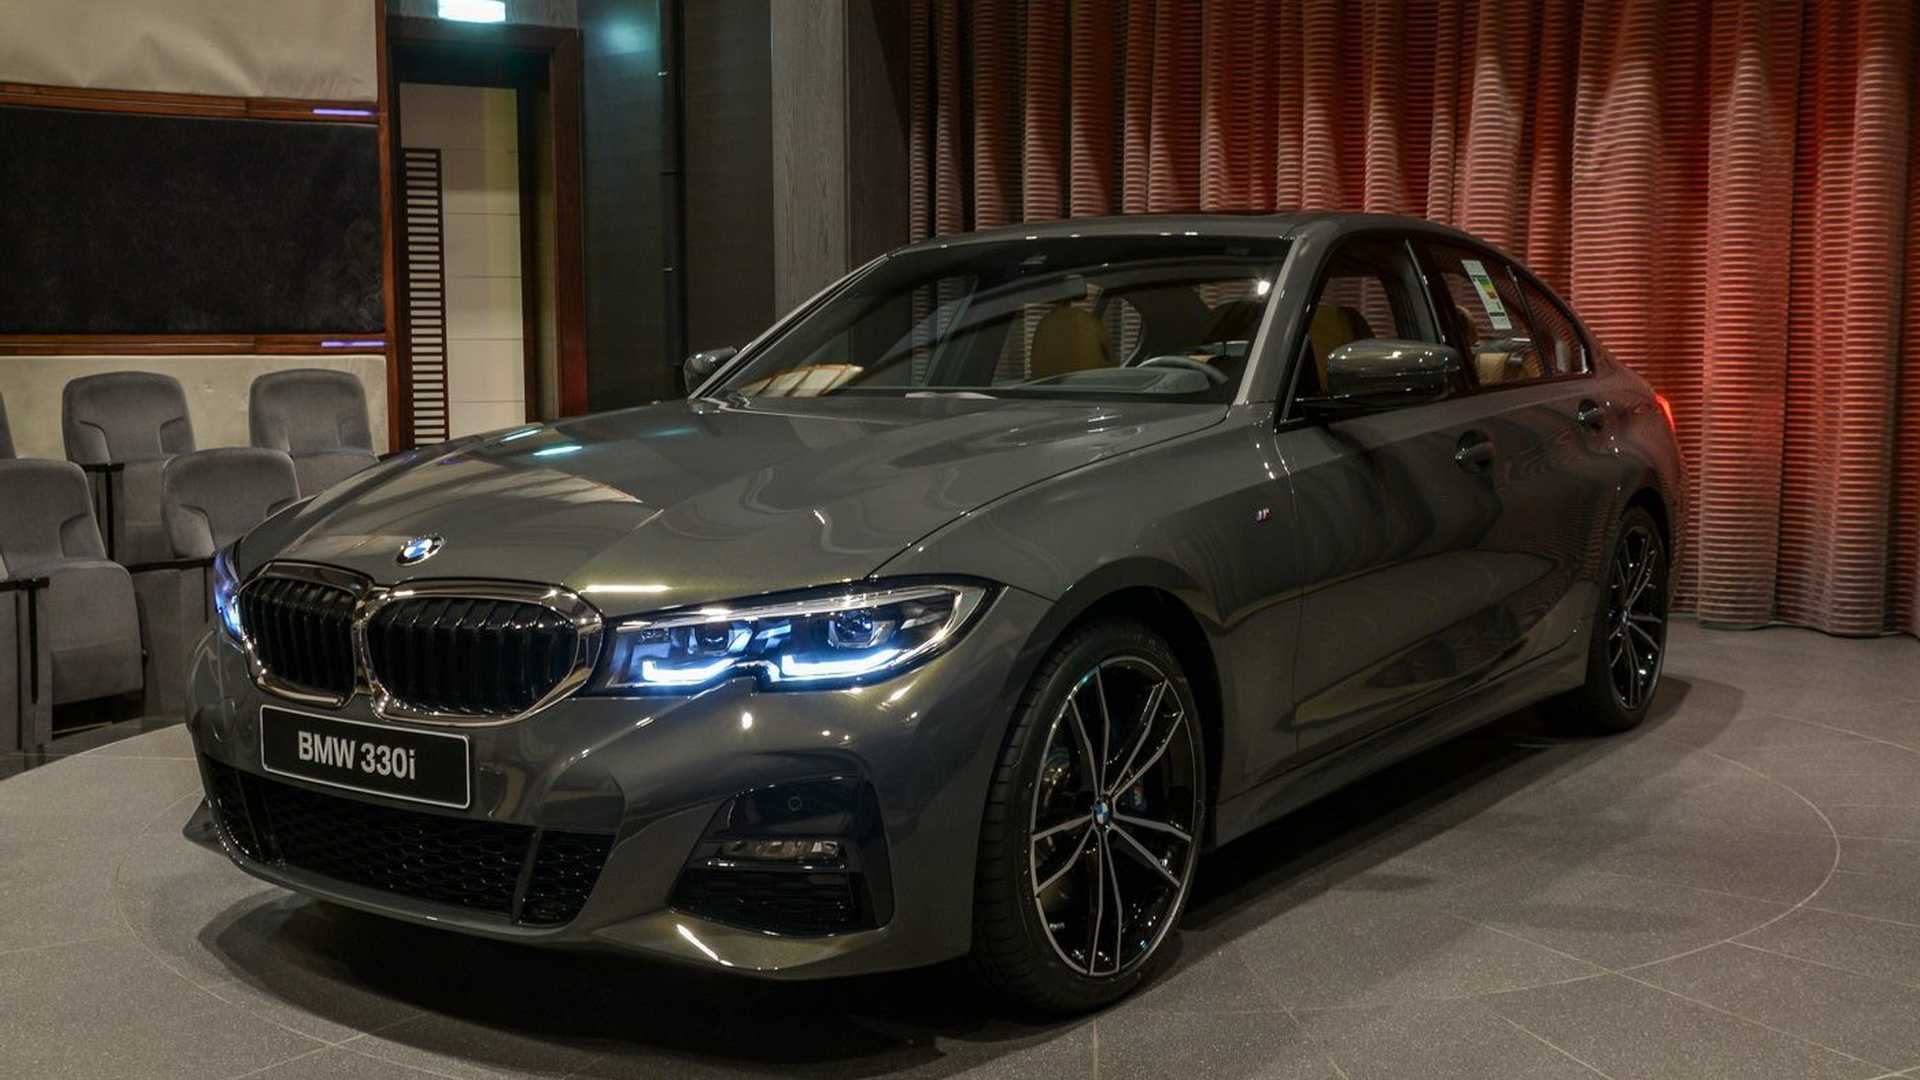 2019 Bmw 3 Series In Dravite Grey Metallic Individual Color